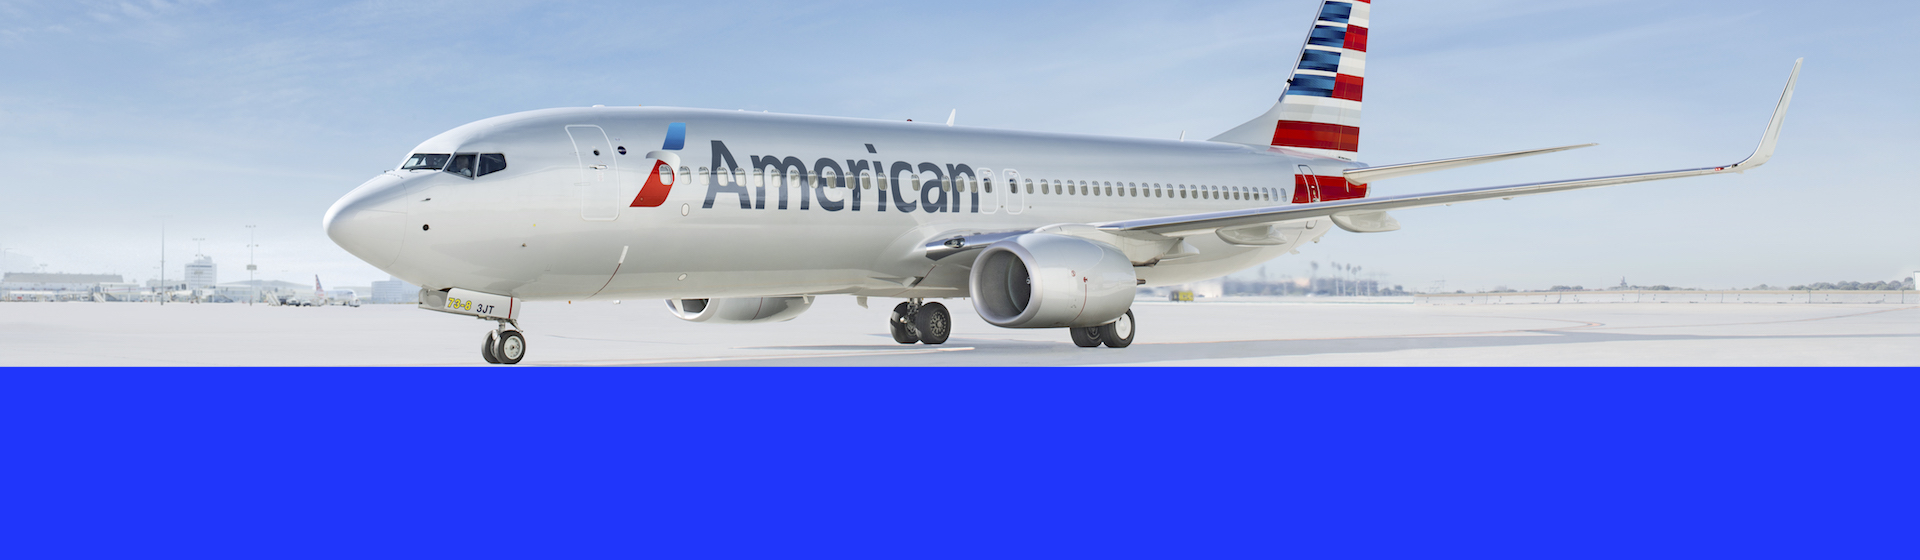 Airline american flight prior ticket time travel